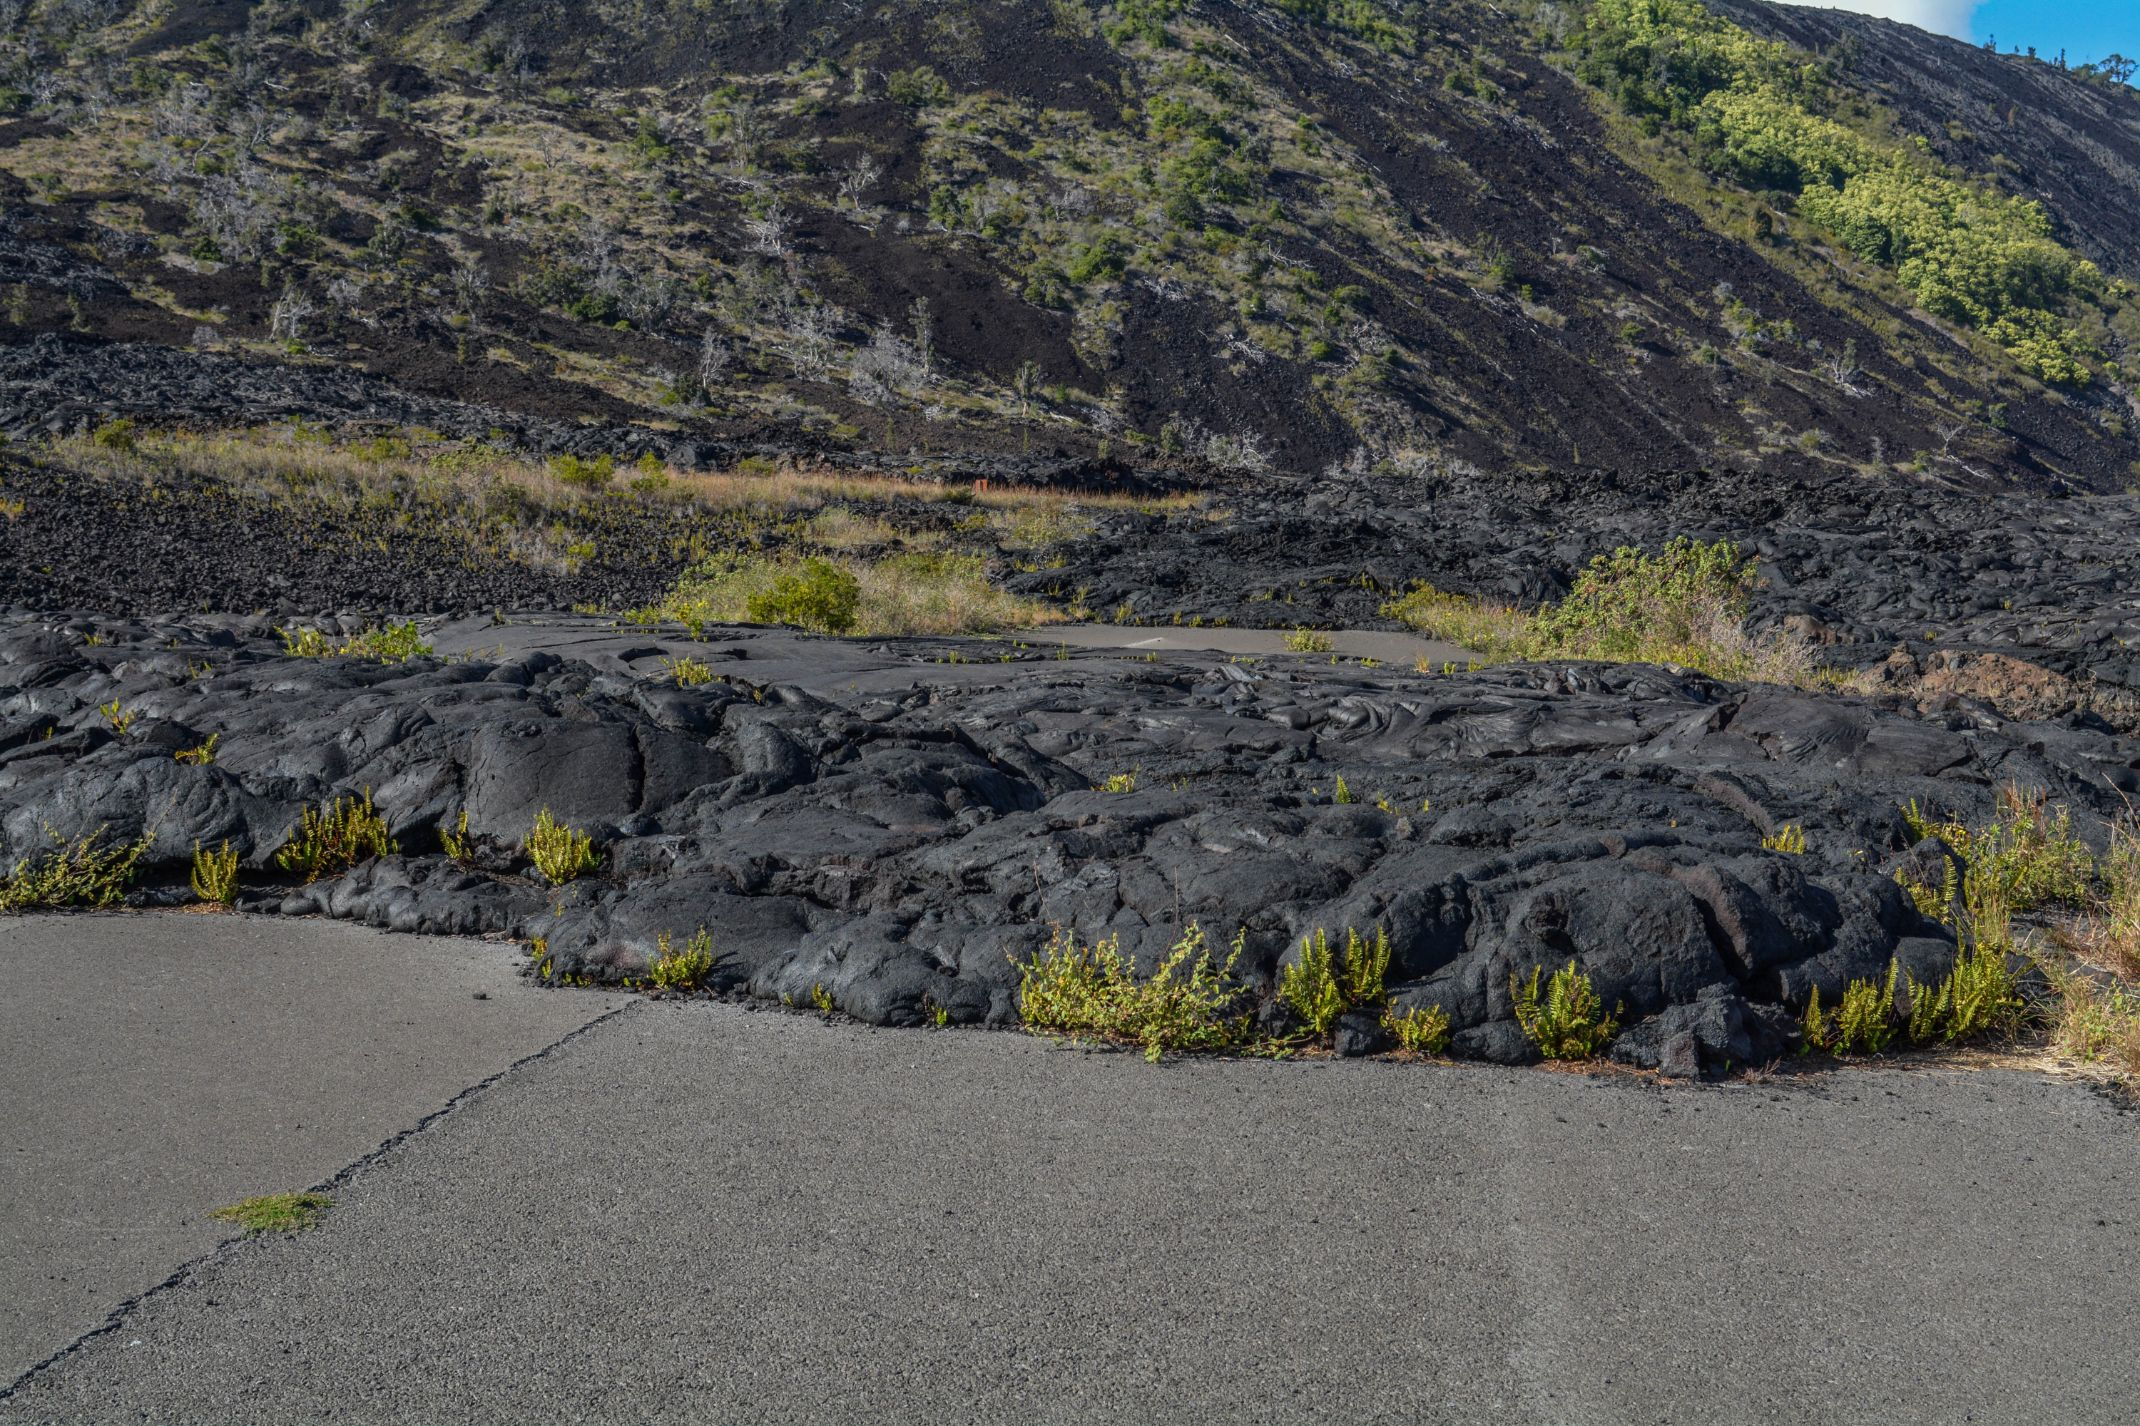 Lava-Over-the-Road